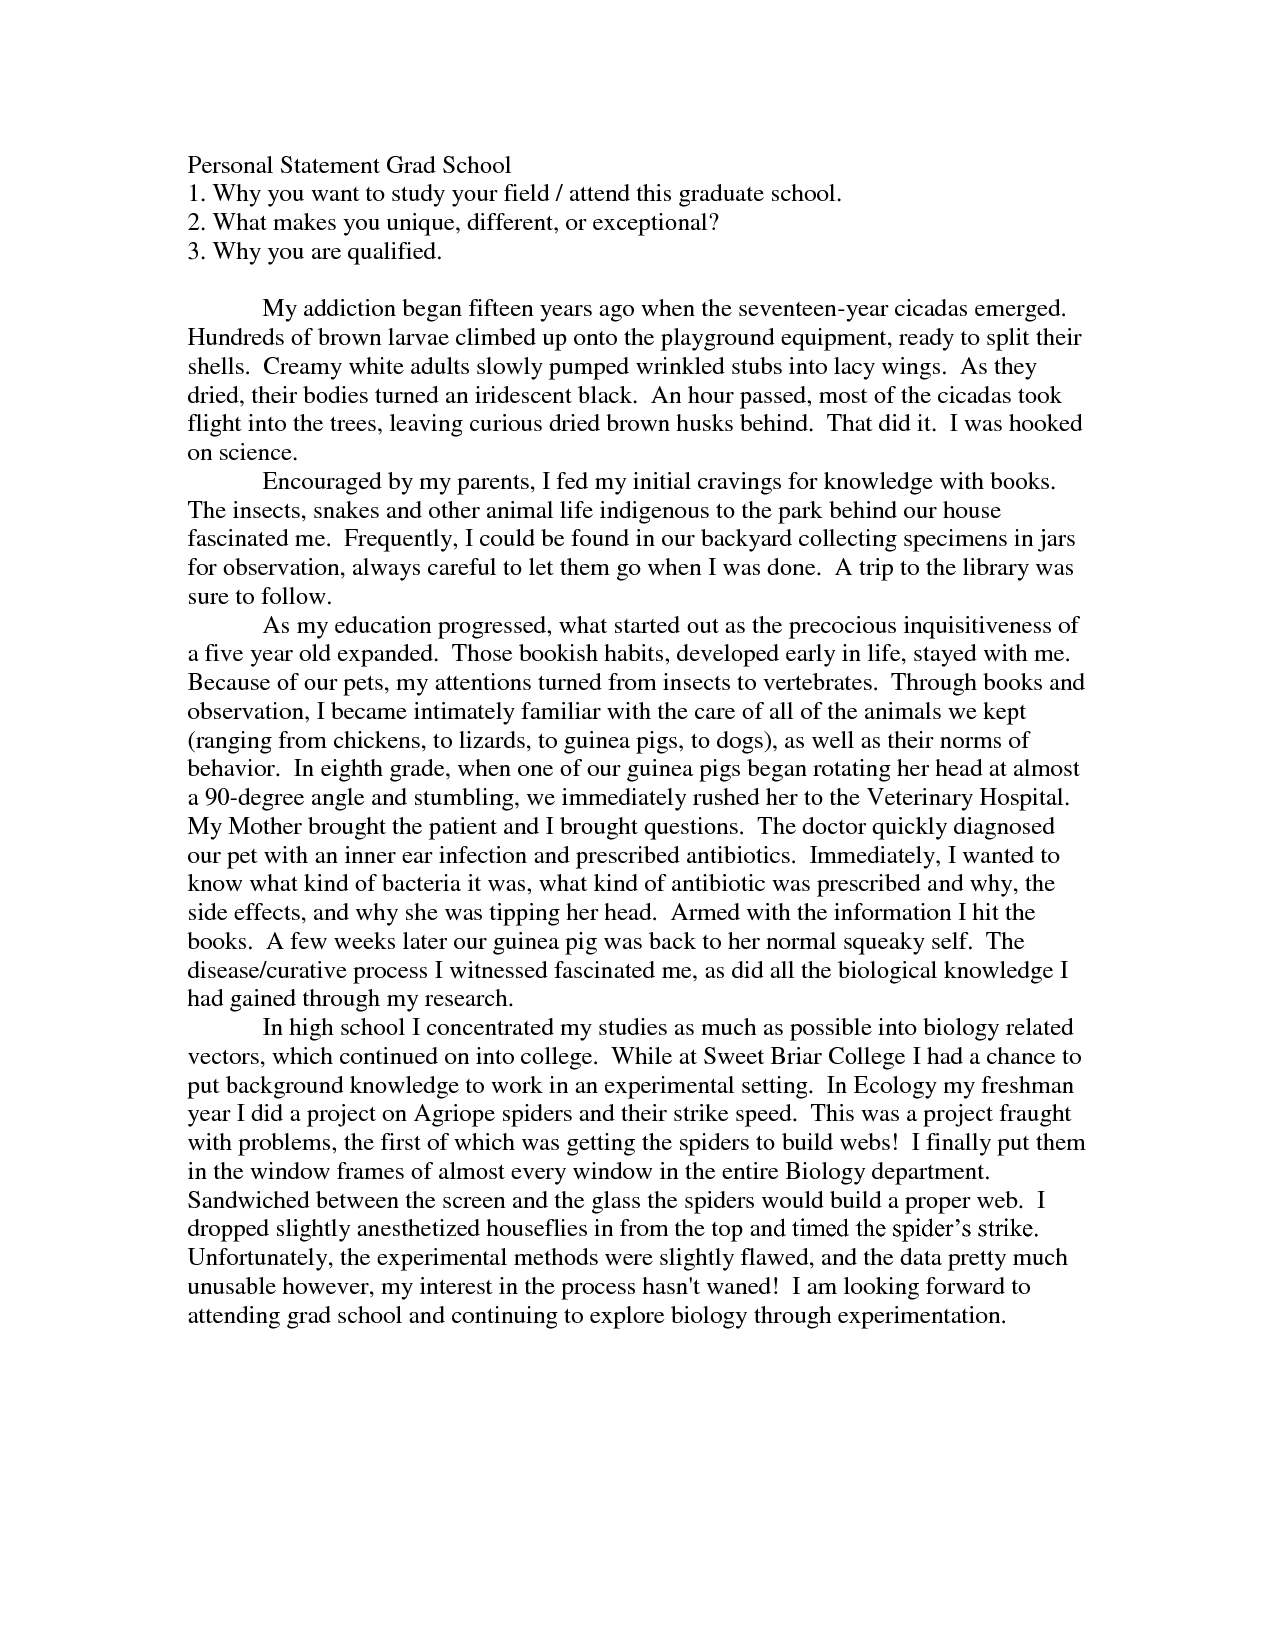 011 Best Ideas Of Sample Personal Statements Graduate School Simple Essay Collections Isaac Asimov Essays Awful On Creativity Intelligence Full